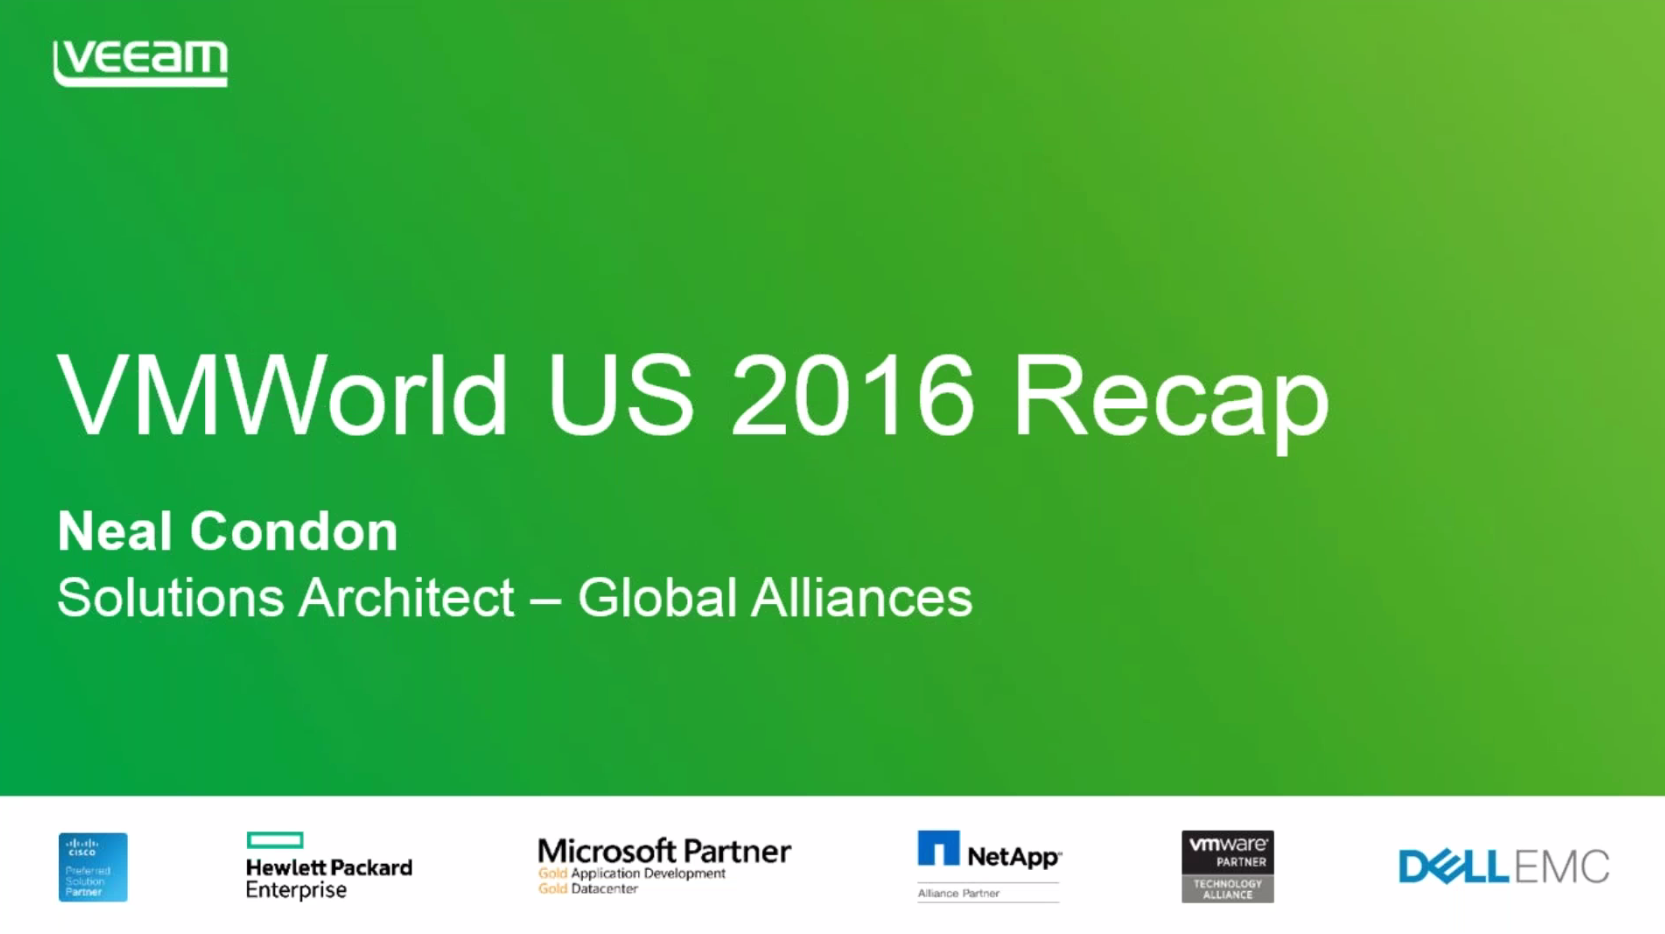 VMworld US 2016: What you need to know